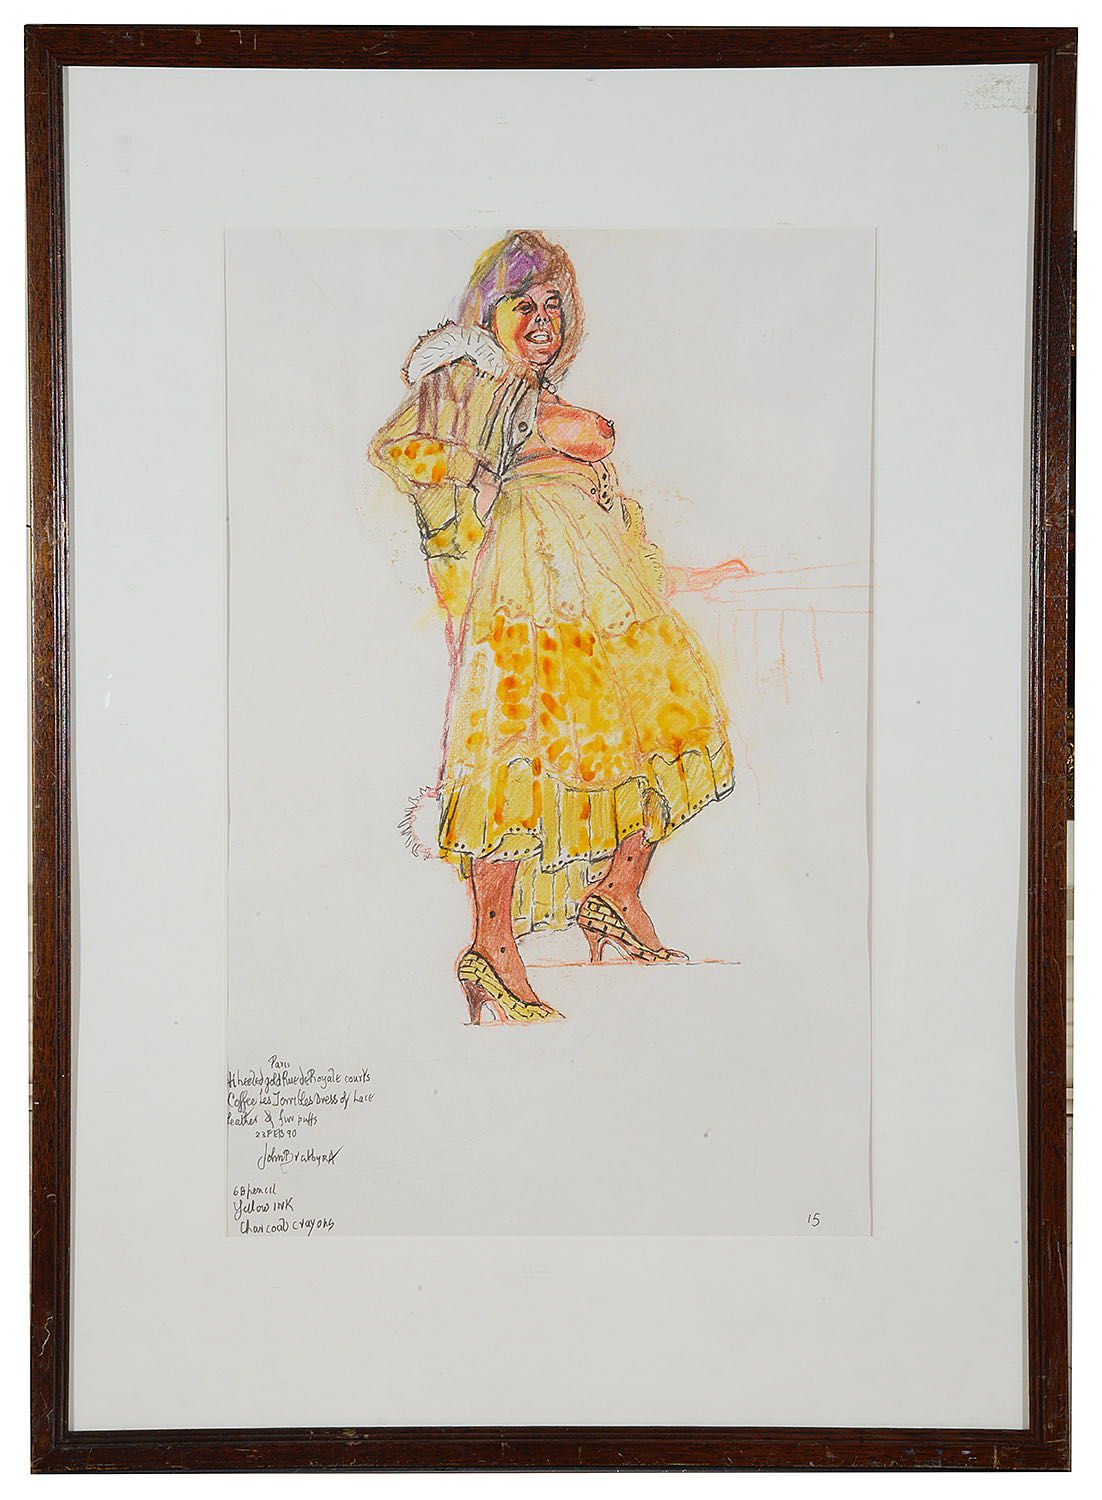 Lot 42 - John Bratby R.A. (Brit. 1928-1992) 'Patti in Yellow Dress', mixed media, signed